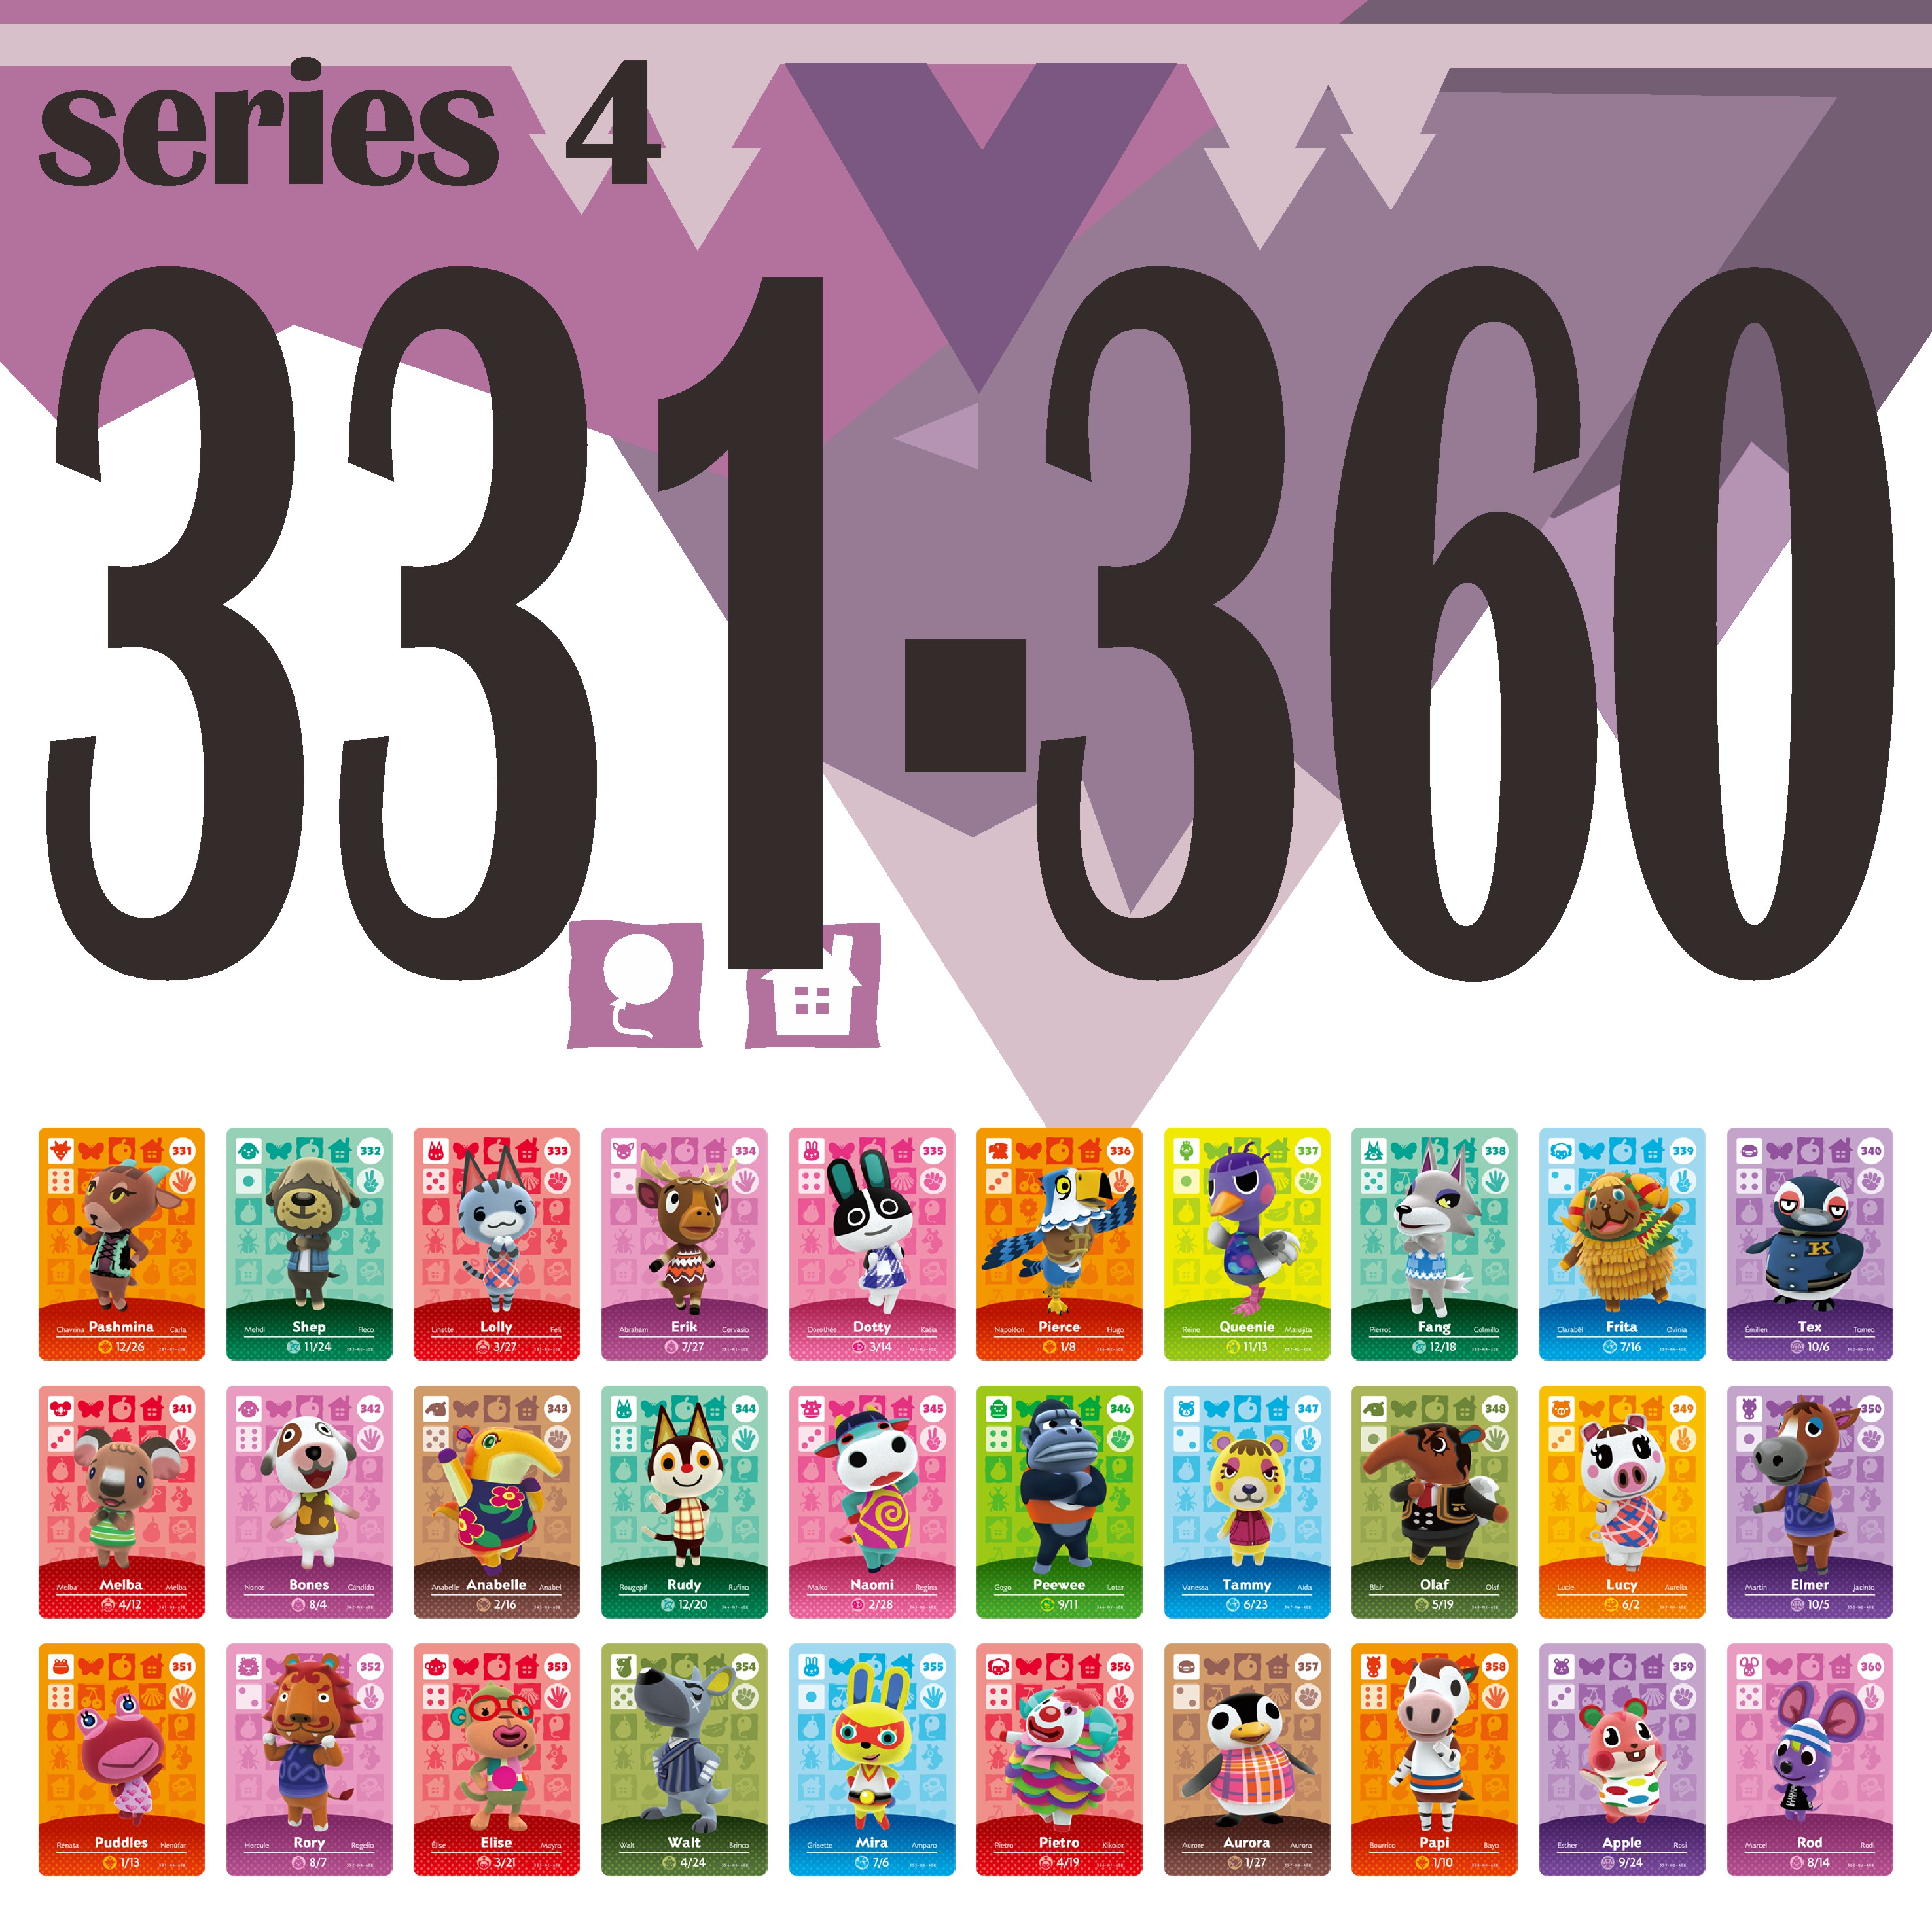 Animal Crossing Card Amiibo Card Work For NS Games Amibo Switch Amiibo Cards Welcome New Horizons NFC Series 4 (331 To 360)